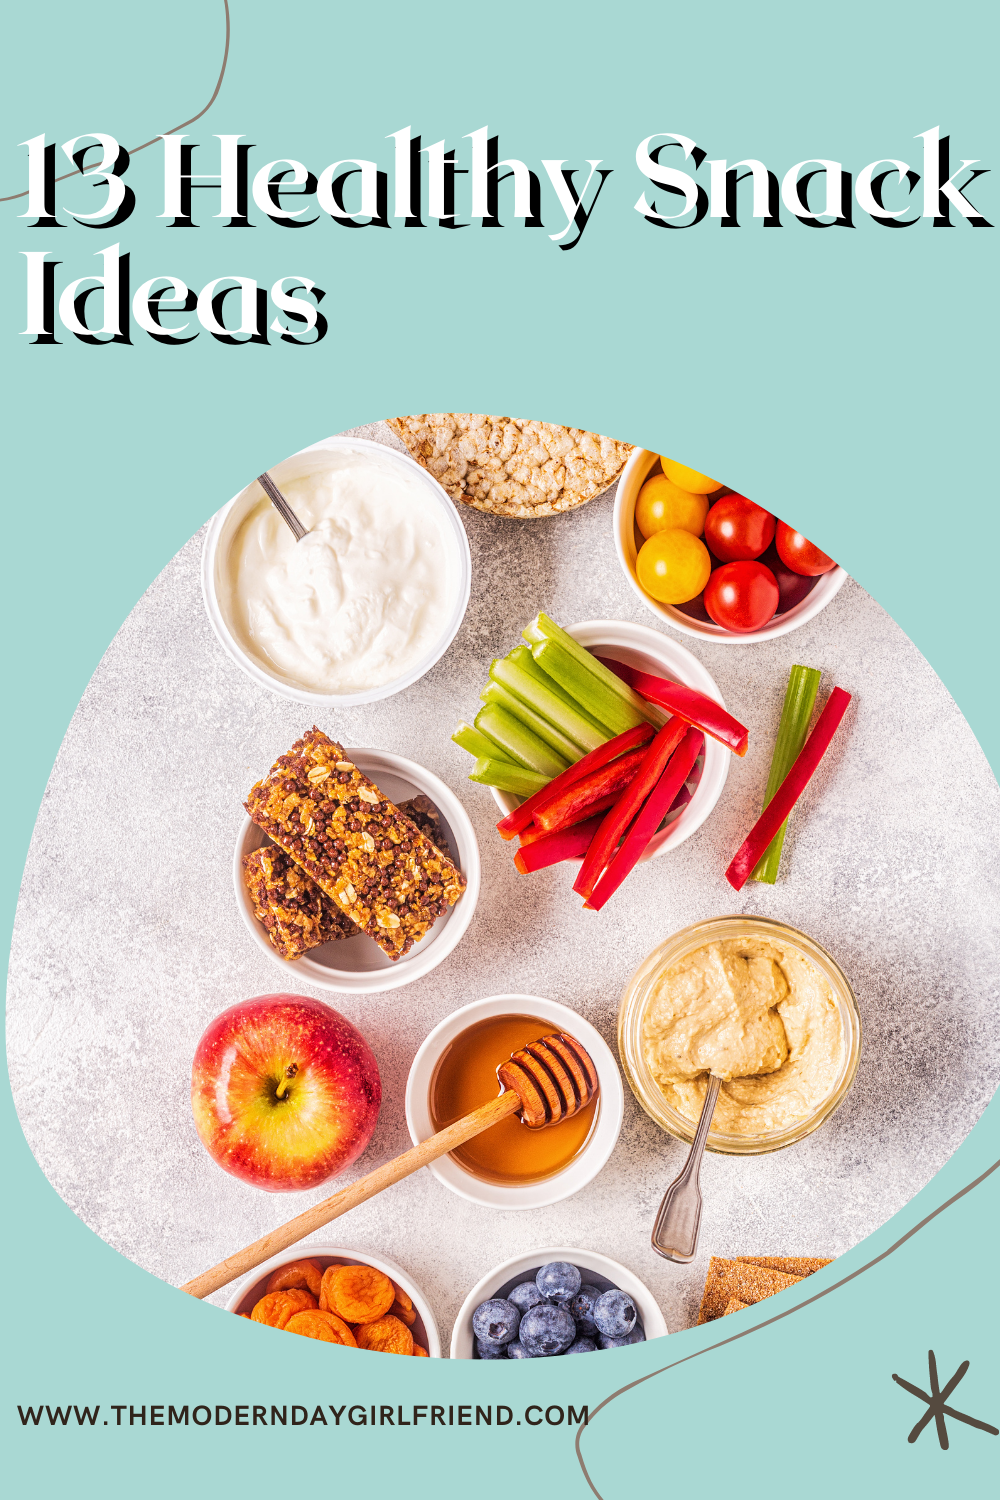 13 Healthy Snacks Ideas To Make At Home